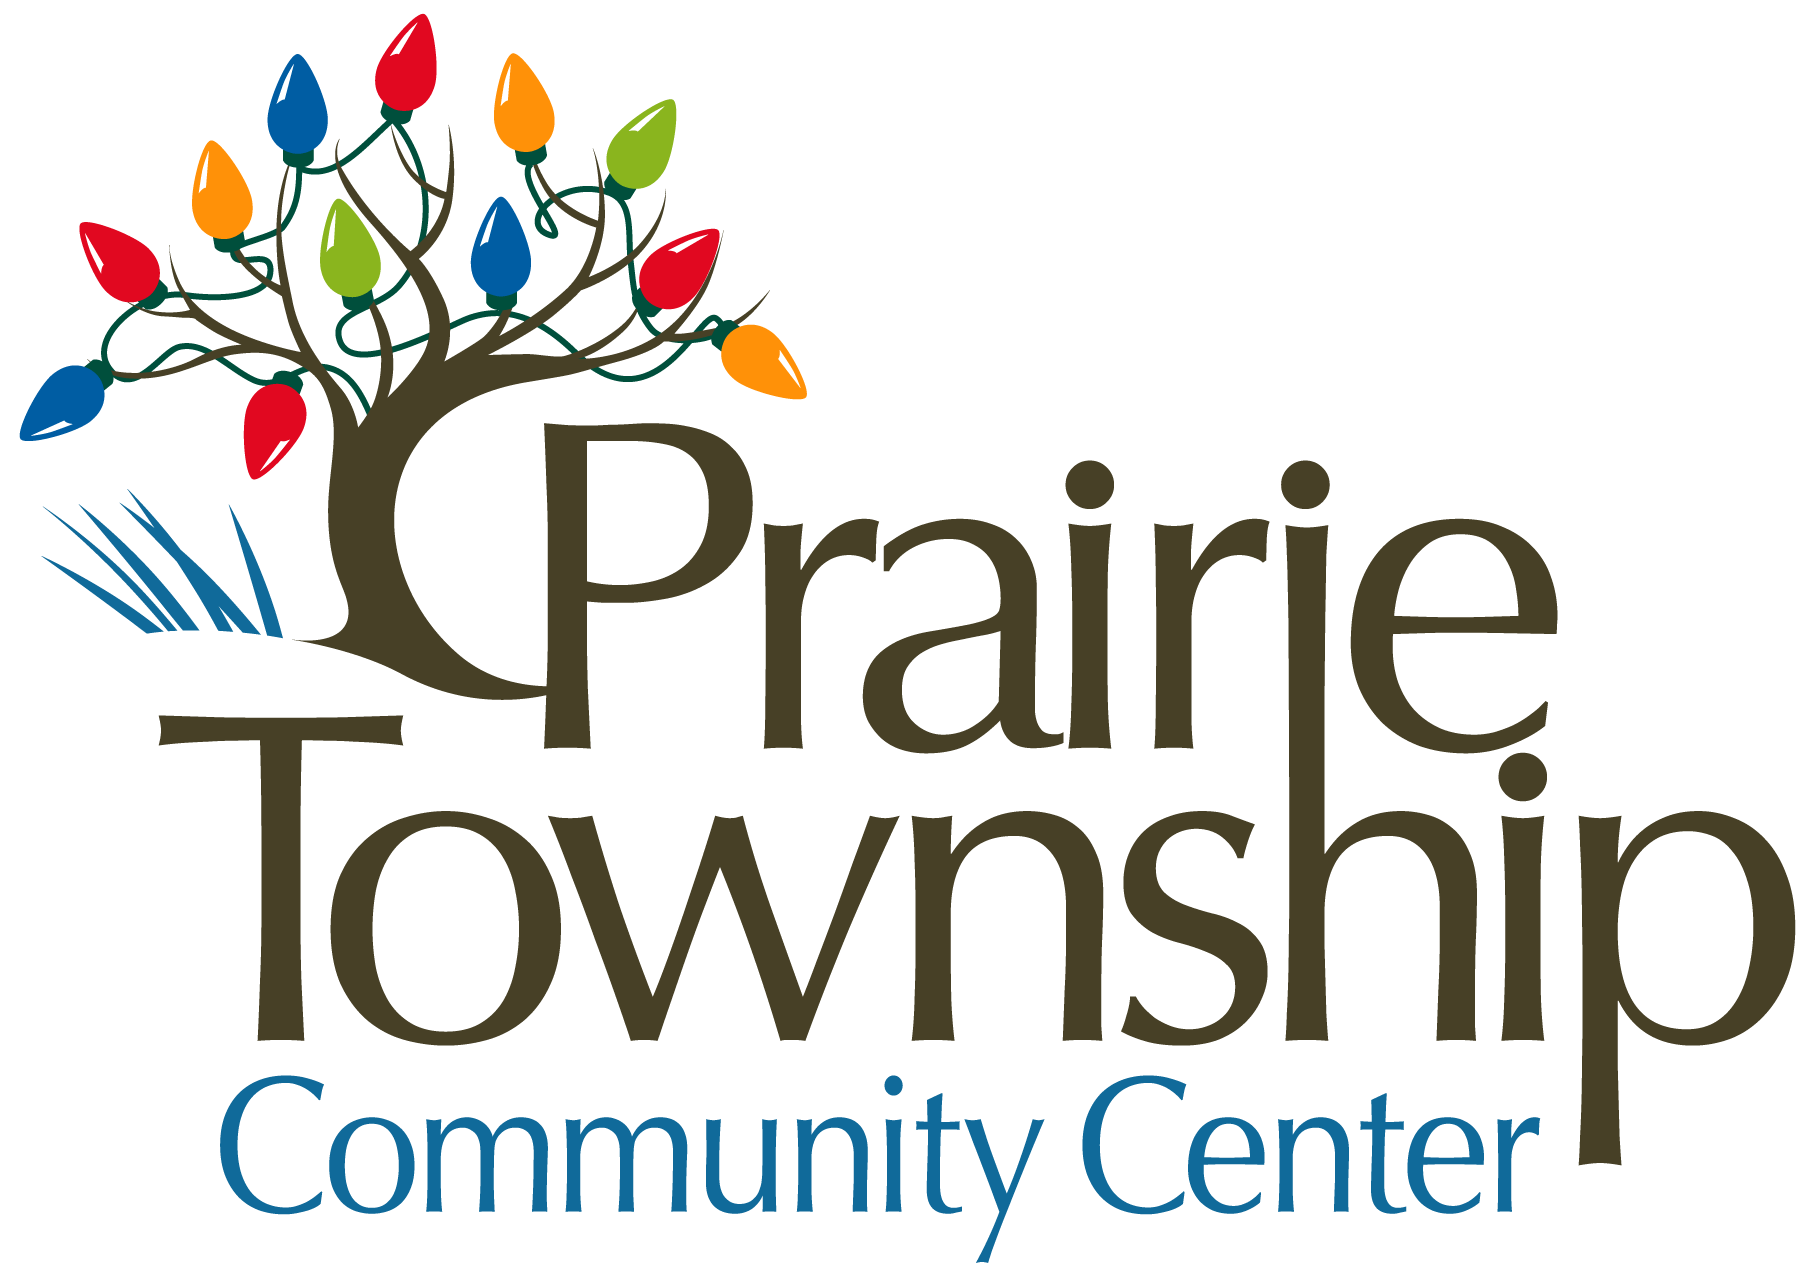 Prairie Township Community Center Holiday Logo